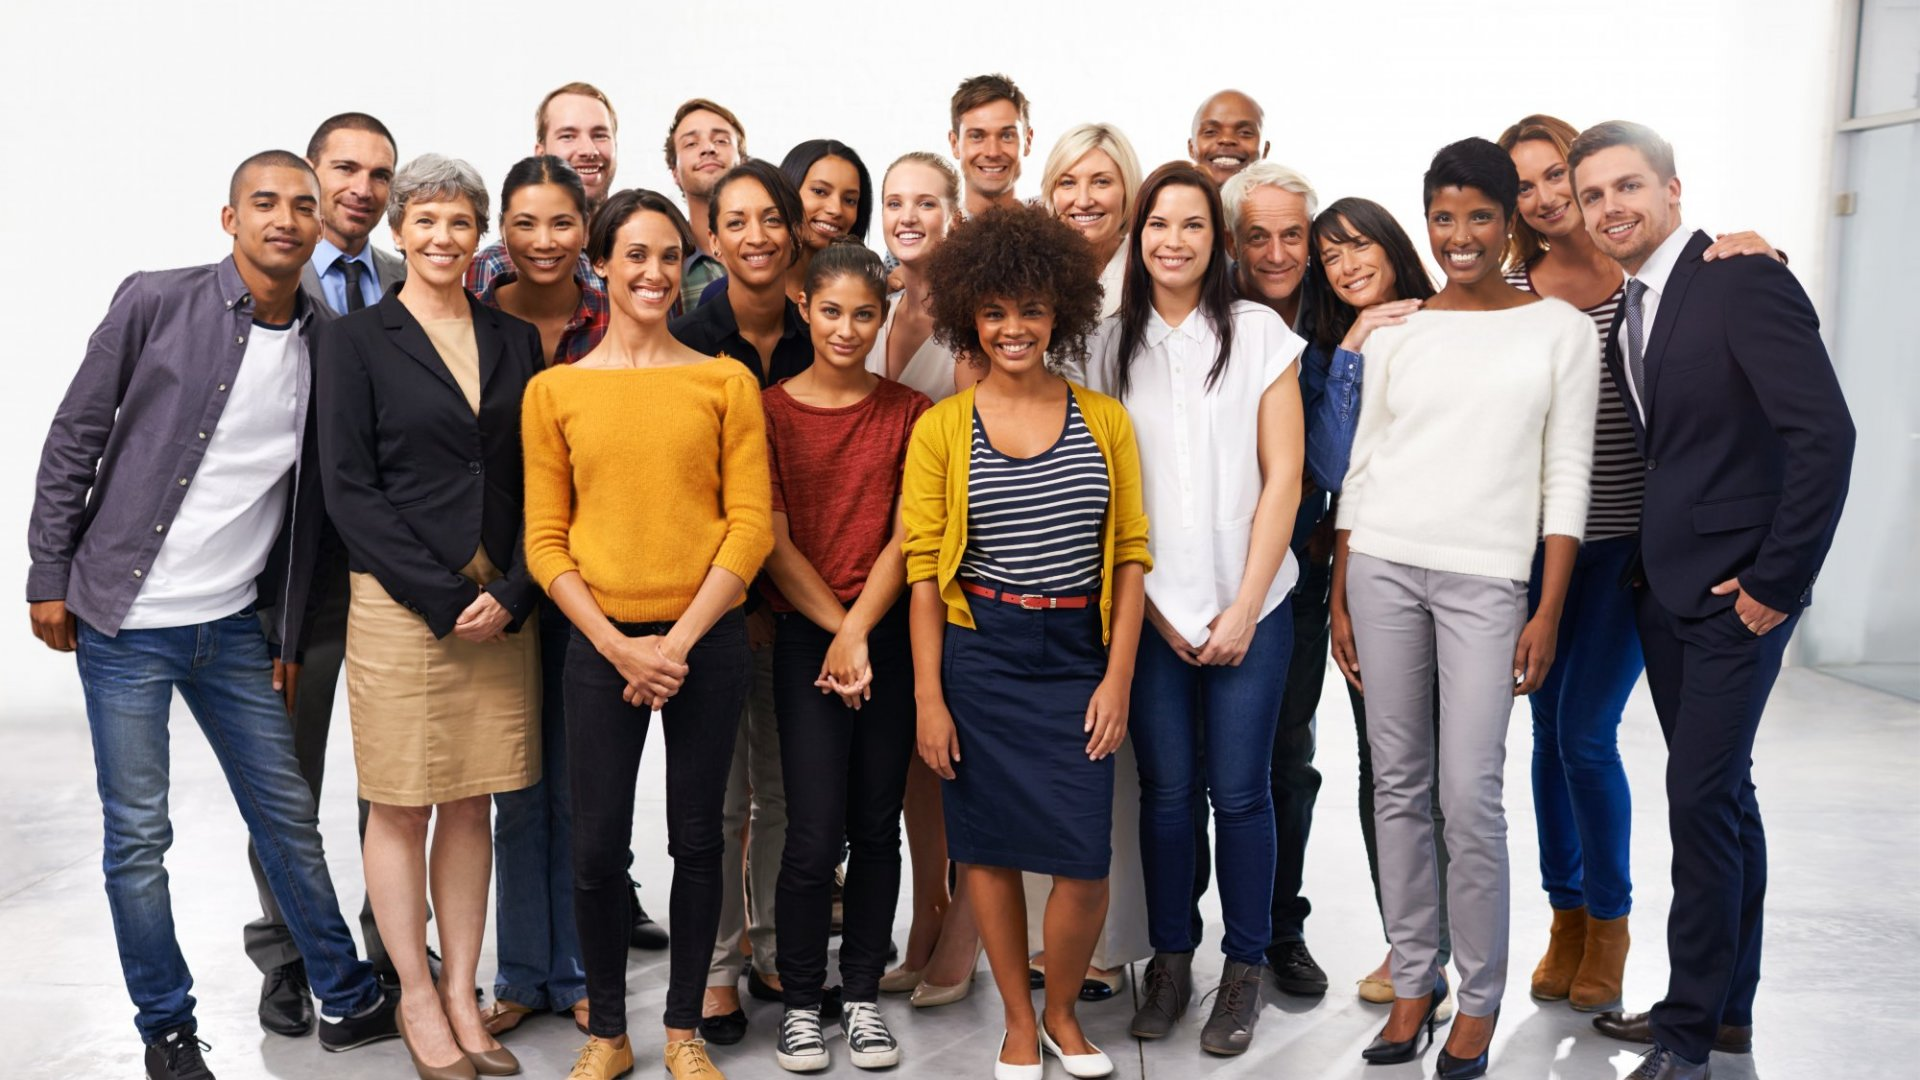 5 Reasons Why Workplace Diversity Is Good For Business